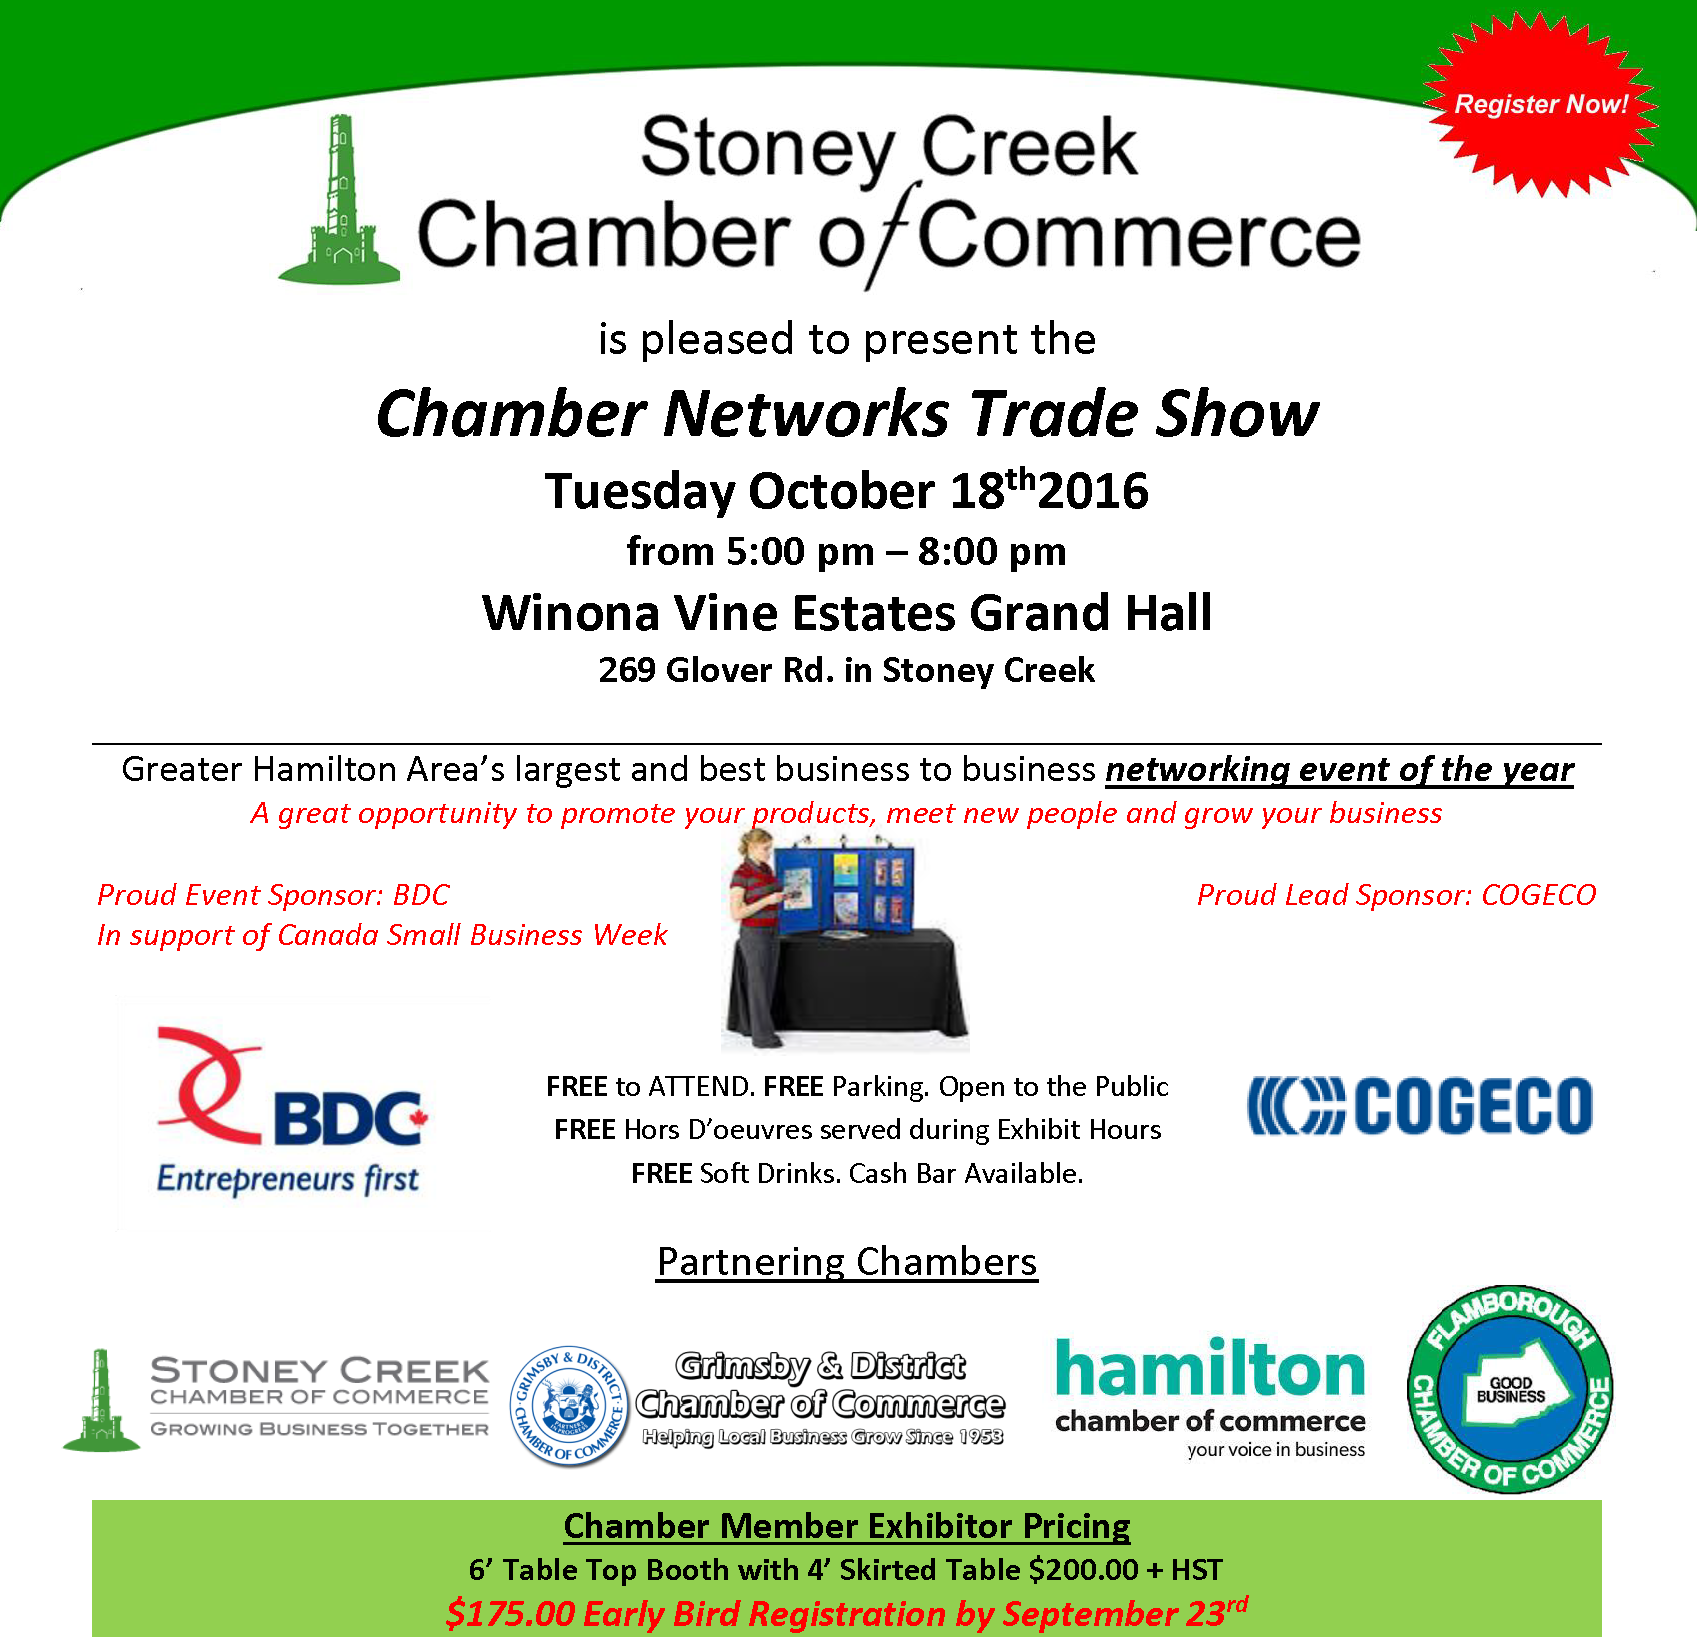 Chamber Networks Trade Show